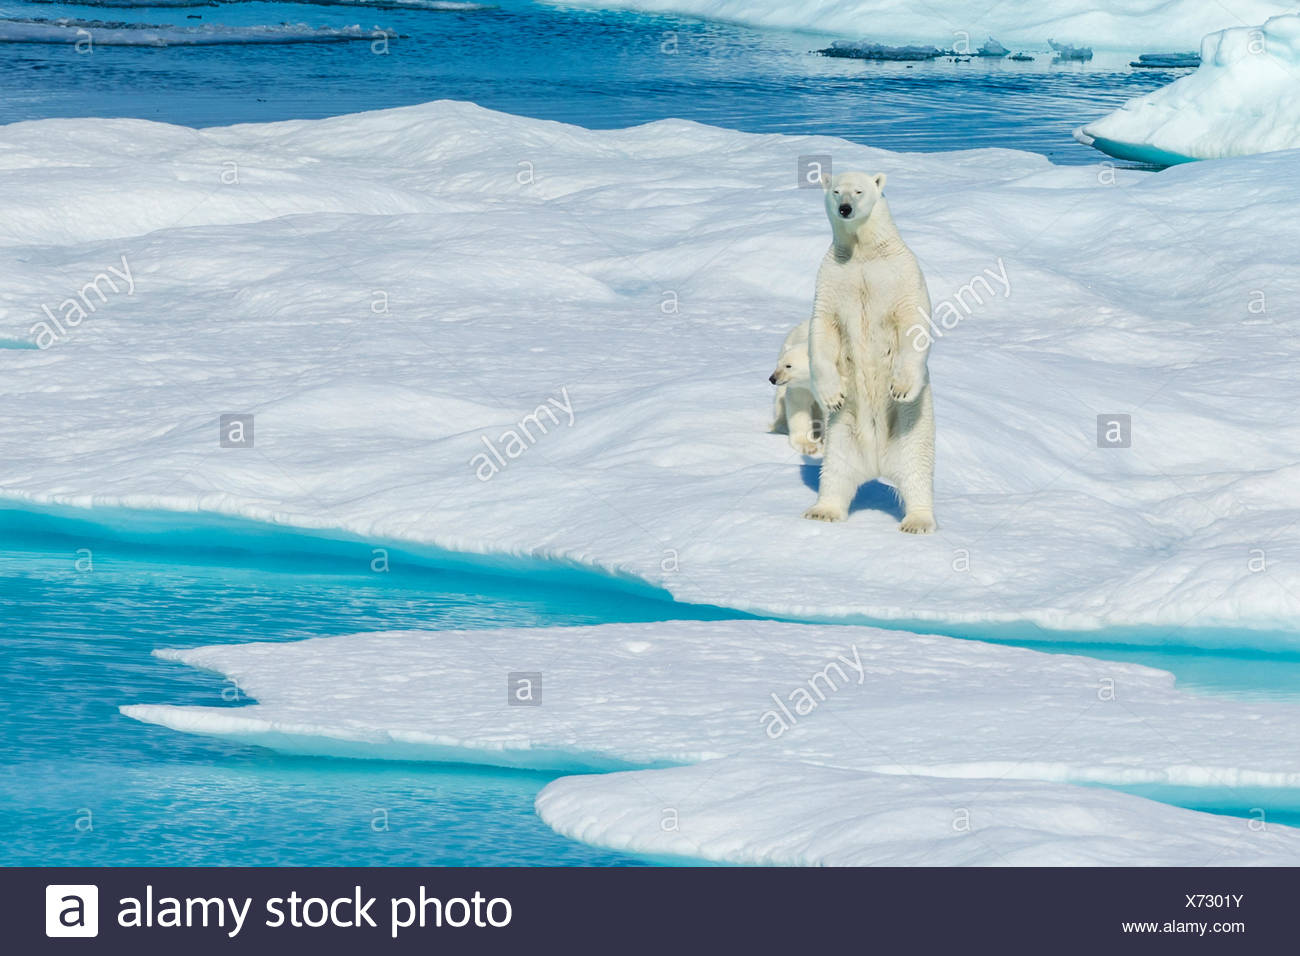 A mother polar bear (Ursus maritimus) stands on its hind legs while its cub looks on. Stock Photo